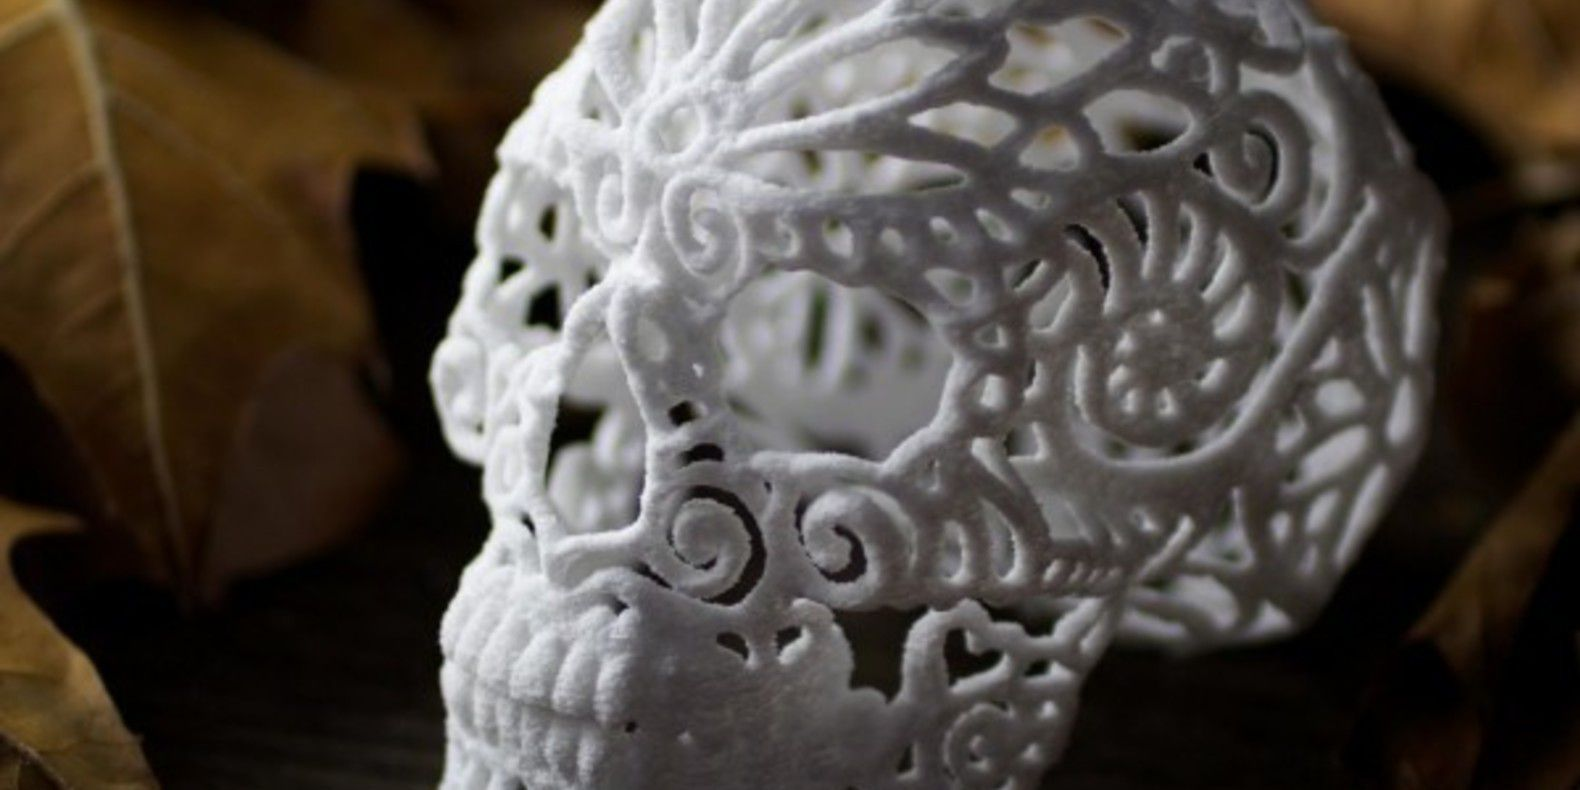 A skull printed in 3D and sugar